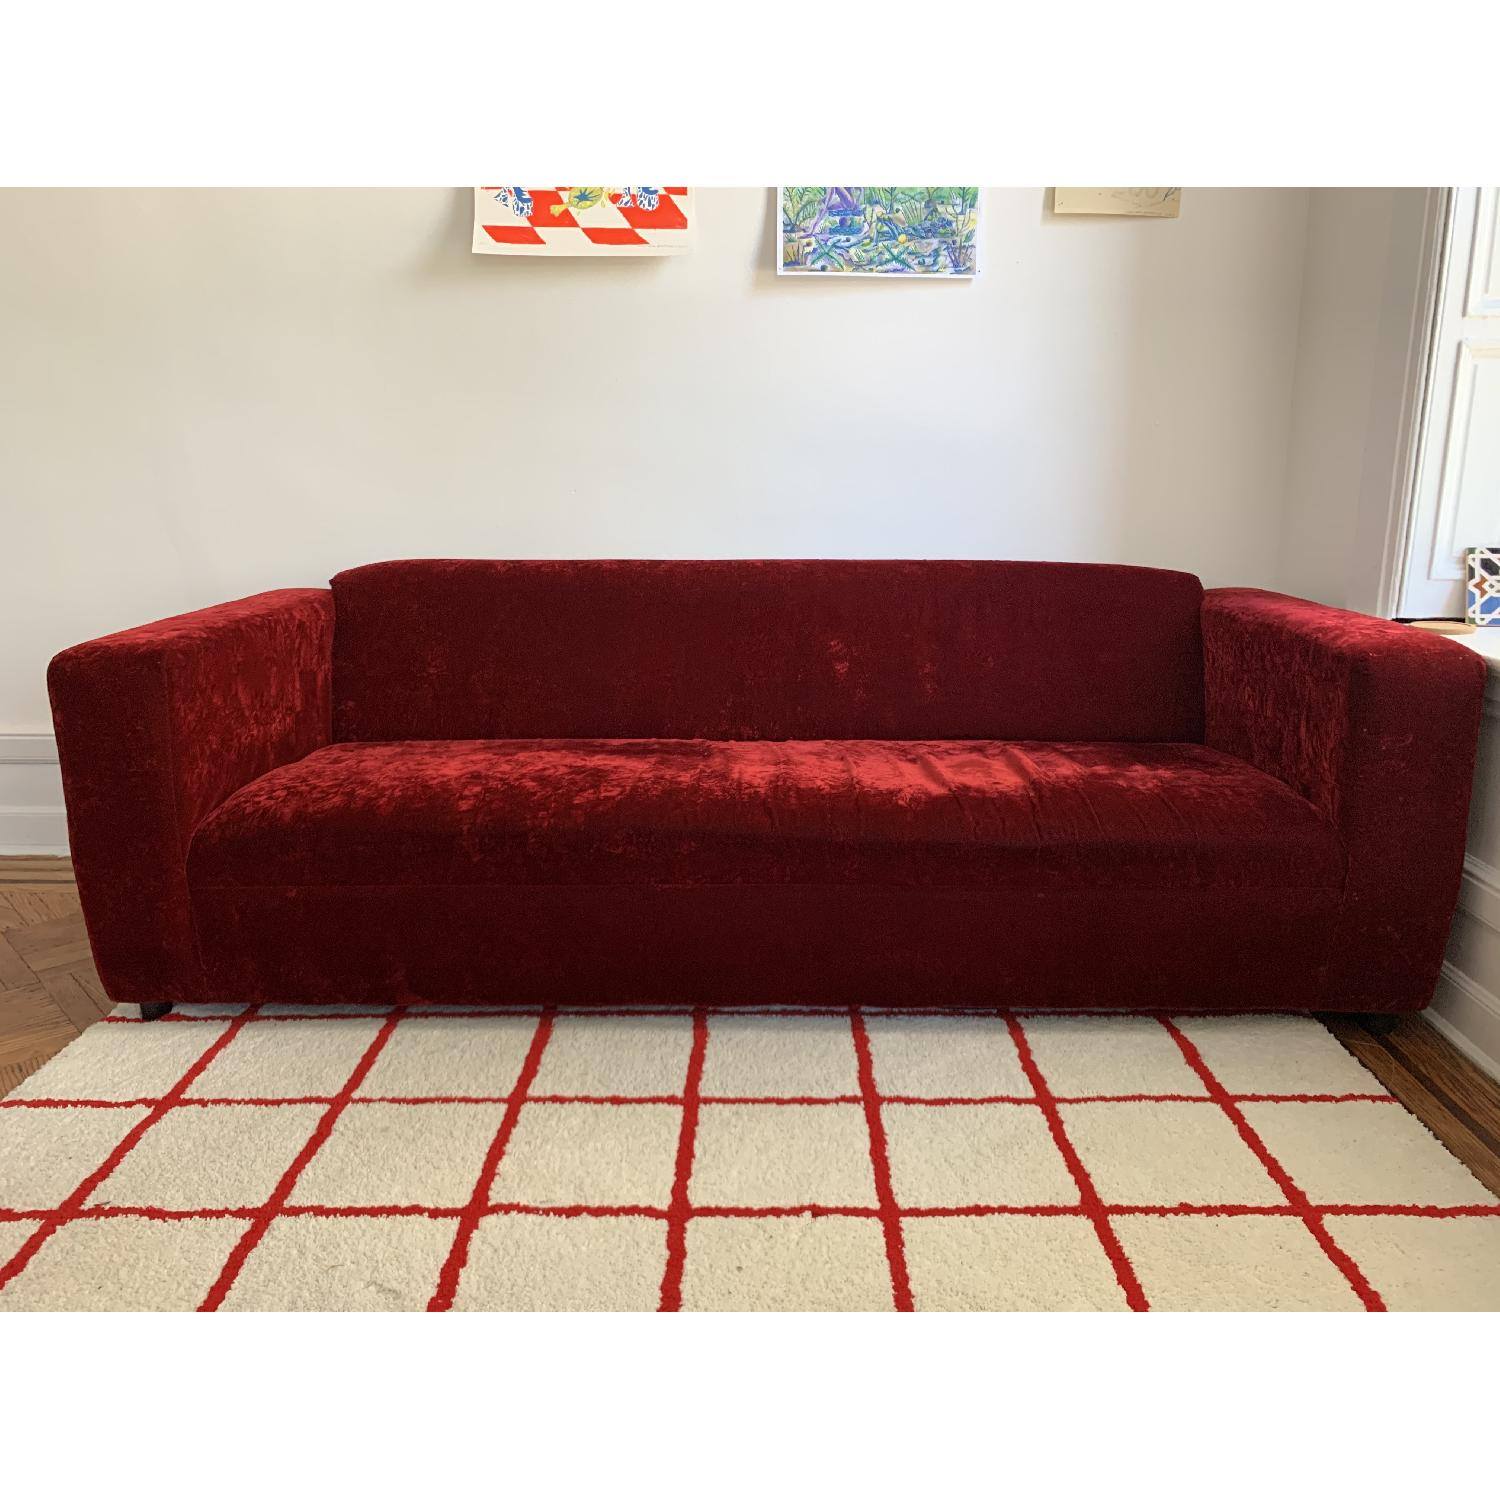 Deep Red Crushed Velvet 3 Seater Sofa - image-3